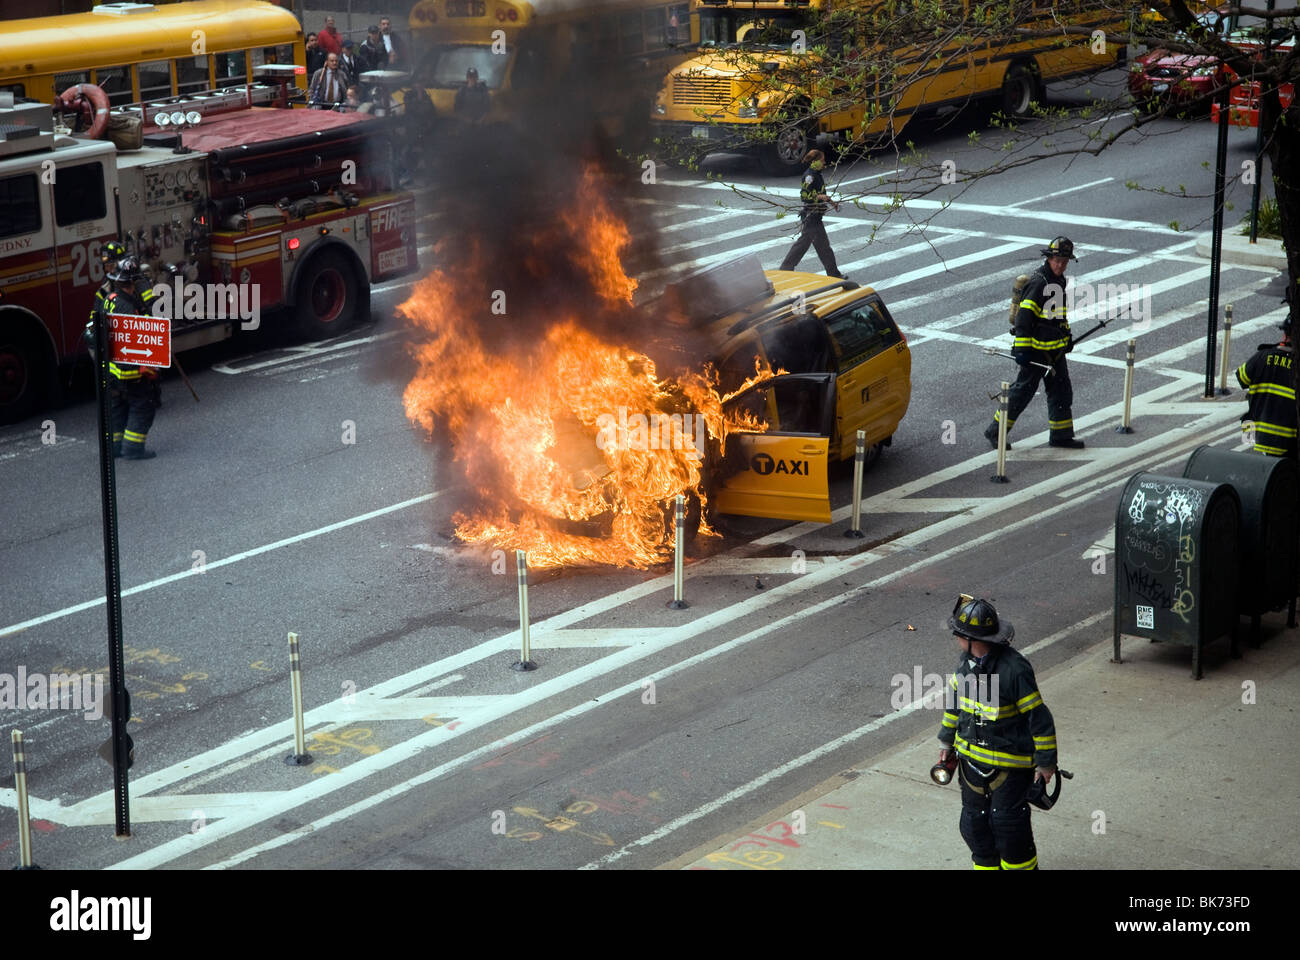 Members of the FDNY extinguish a taxicab that has caught fire on Ninth Avenue in the New York neighborhood of Chelsea - Stock Image